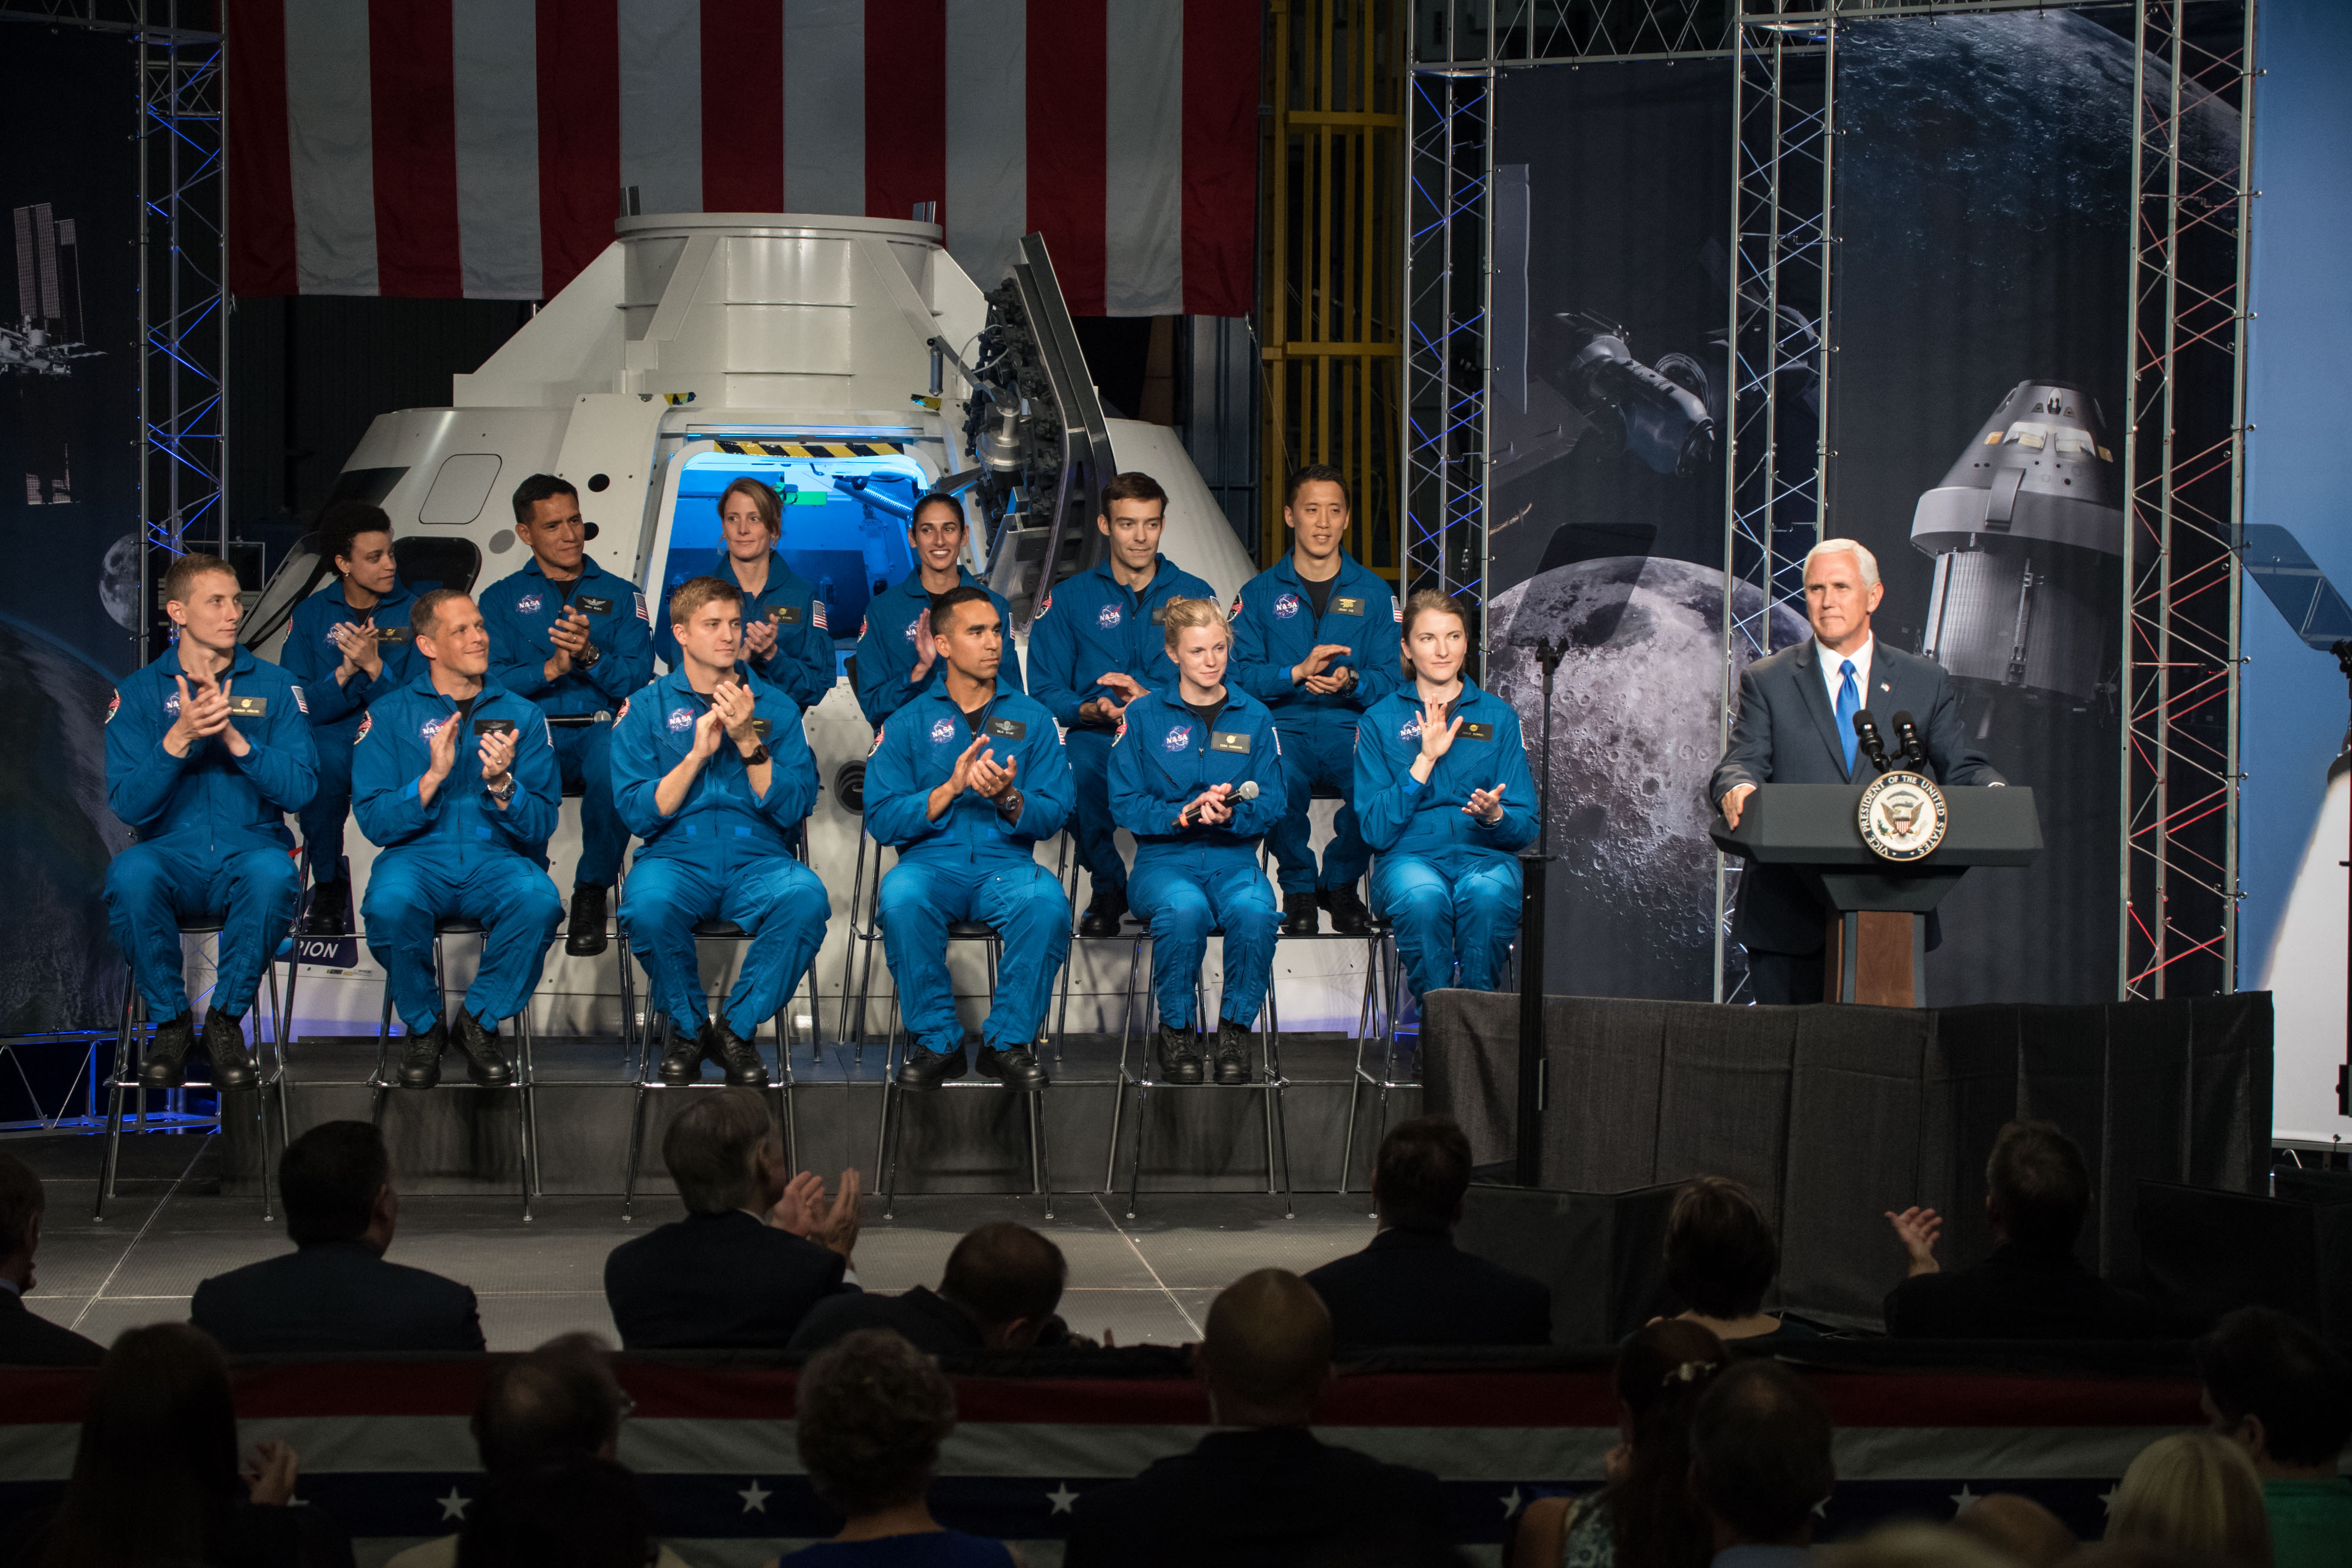 new nasa astronauts - HD 1440×961